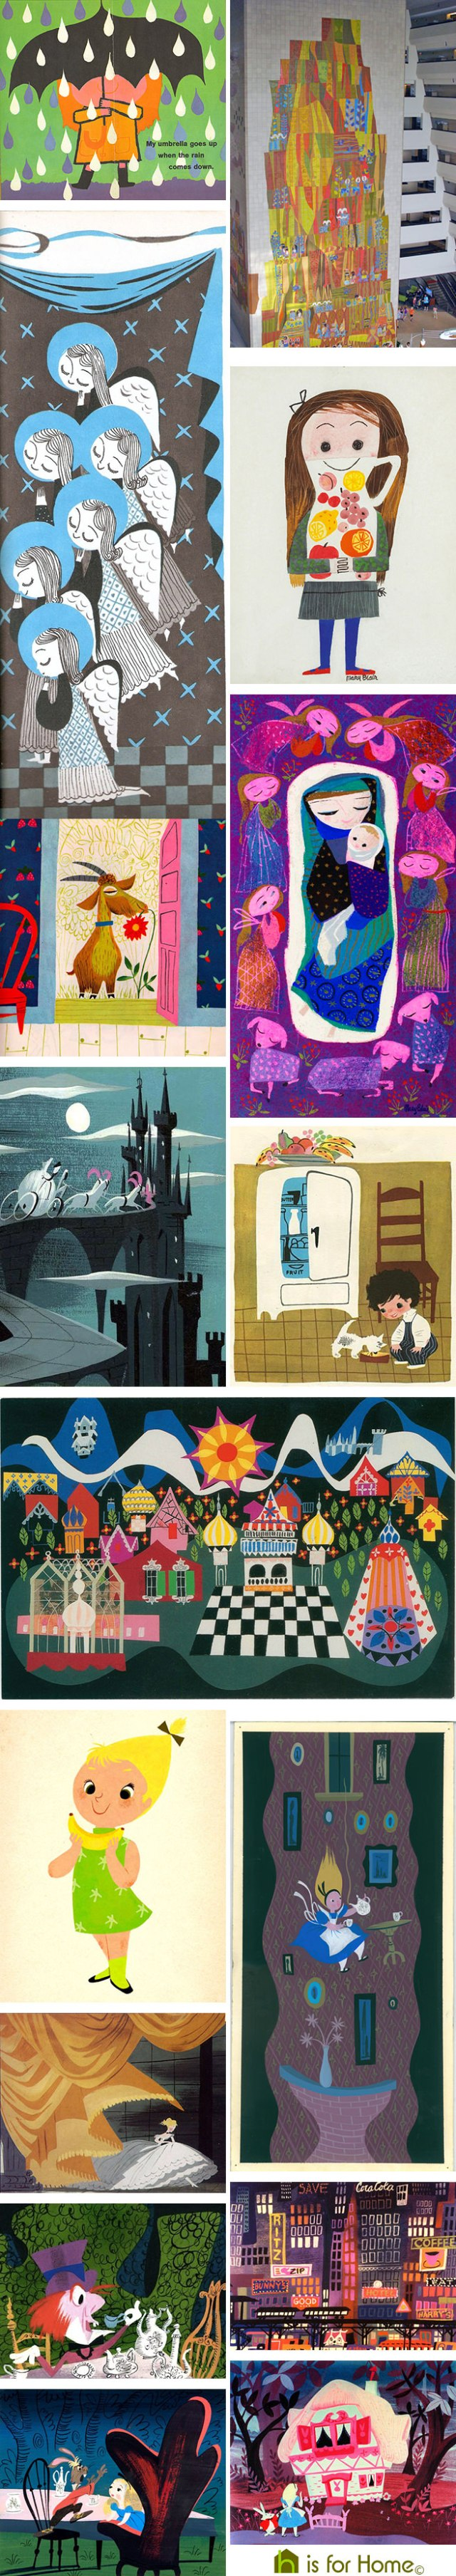 Mosaic of Mary Blair artworks | H is for Home